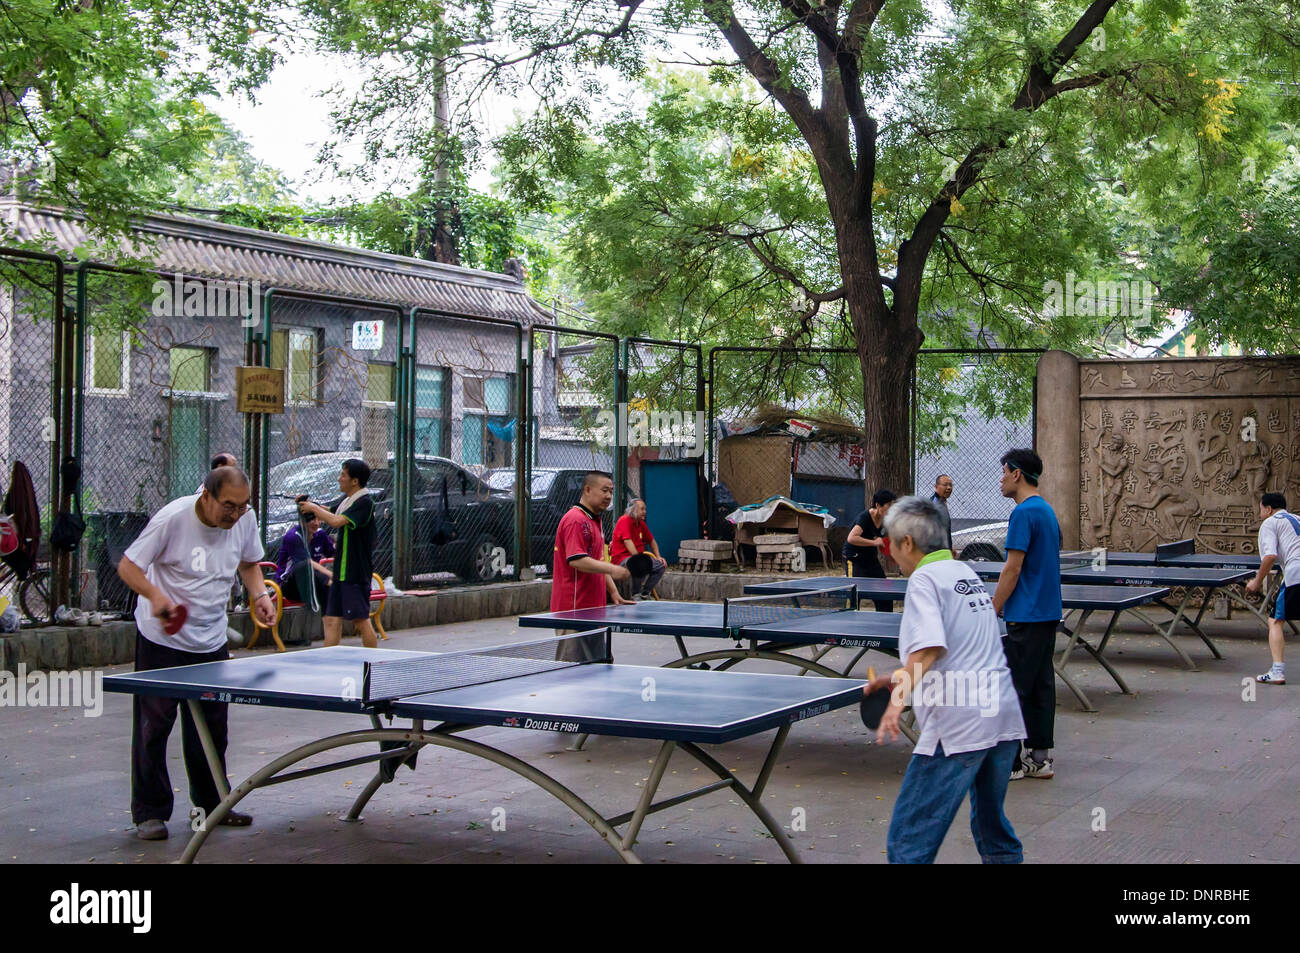 Les gens à jouer au tennis de table dans un parc, Beijing, Chine Photo Stock